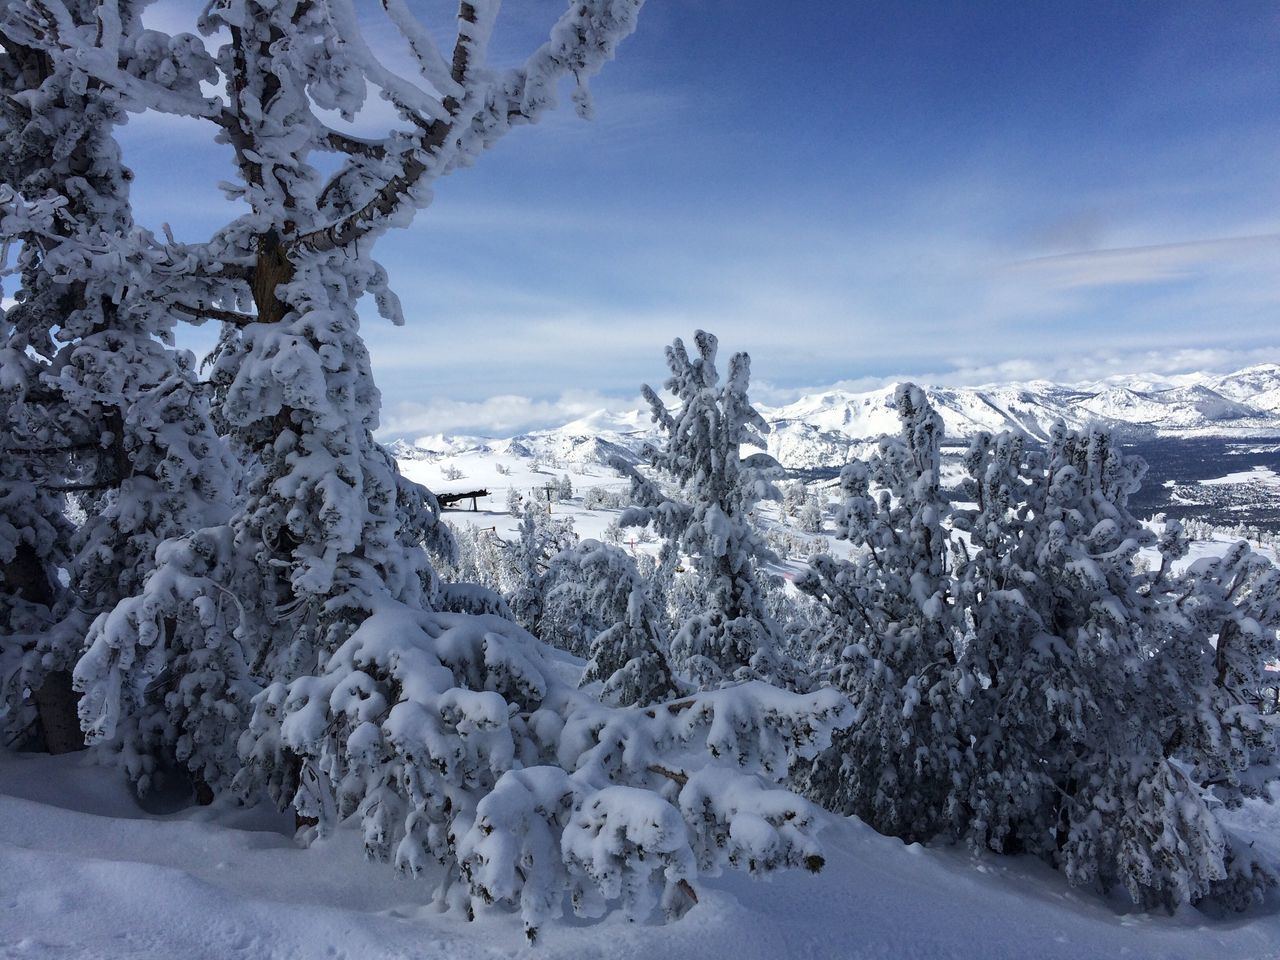 Winter wonderland at Lake Tahoe. 13 meters/ 40 feet of snow. Winter Cold Temperature Nature Weather Landscape Tranquil Scene Mountain IPhone 5 Photography Beauty In Nature Winter Heavenly Ski Resort